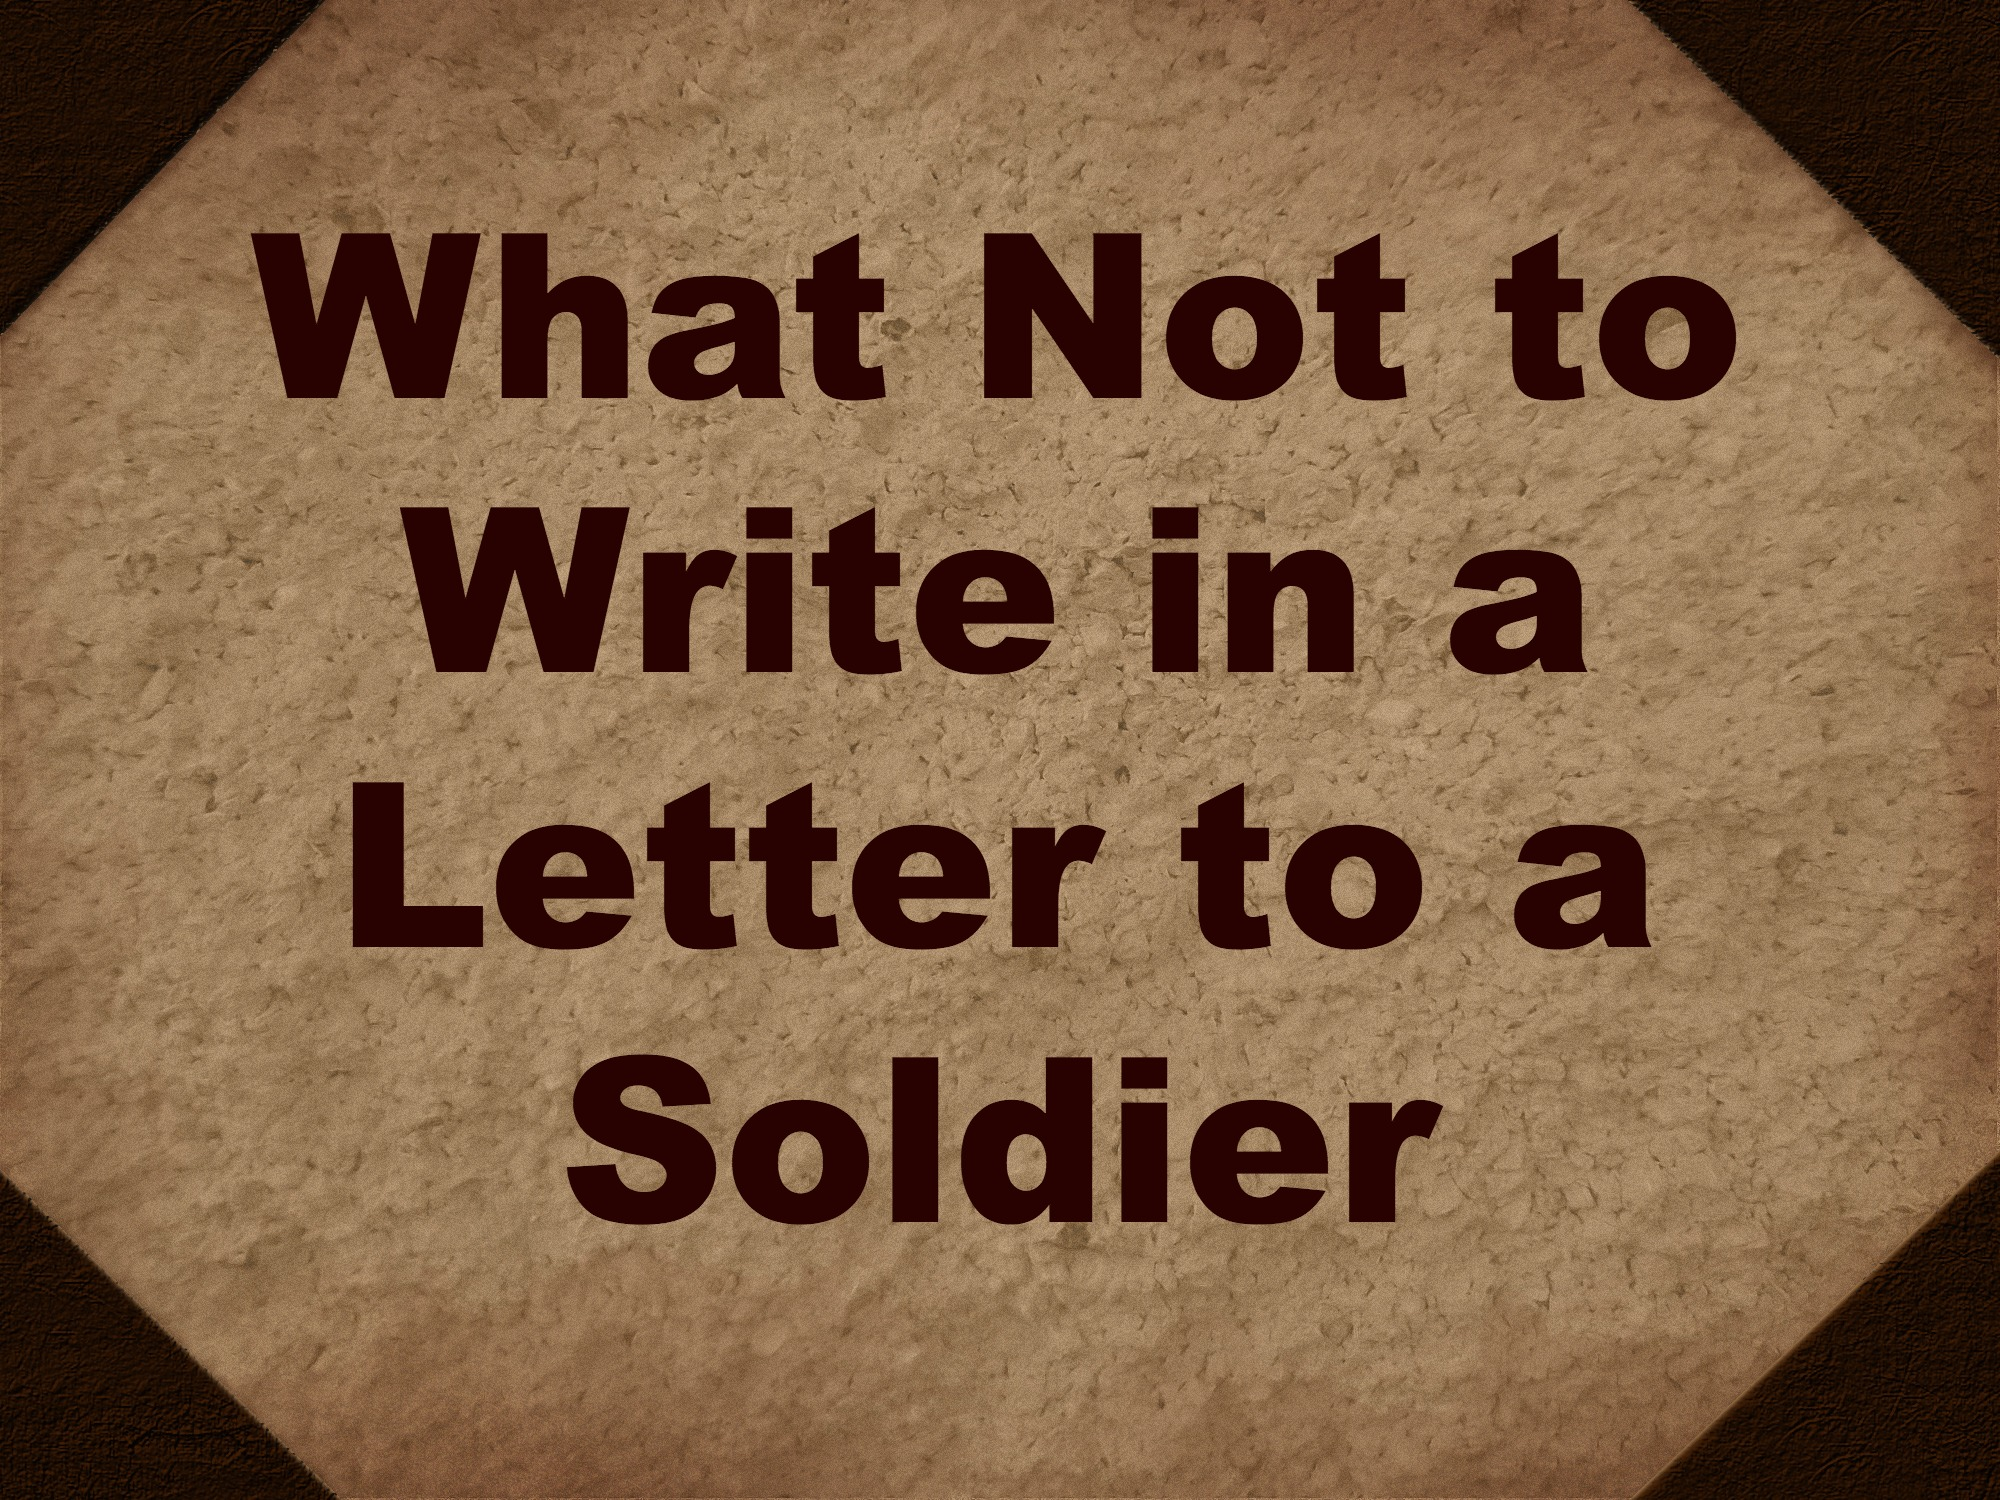 What to write to a soldier